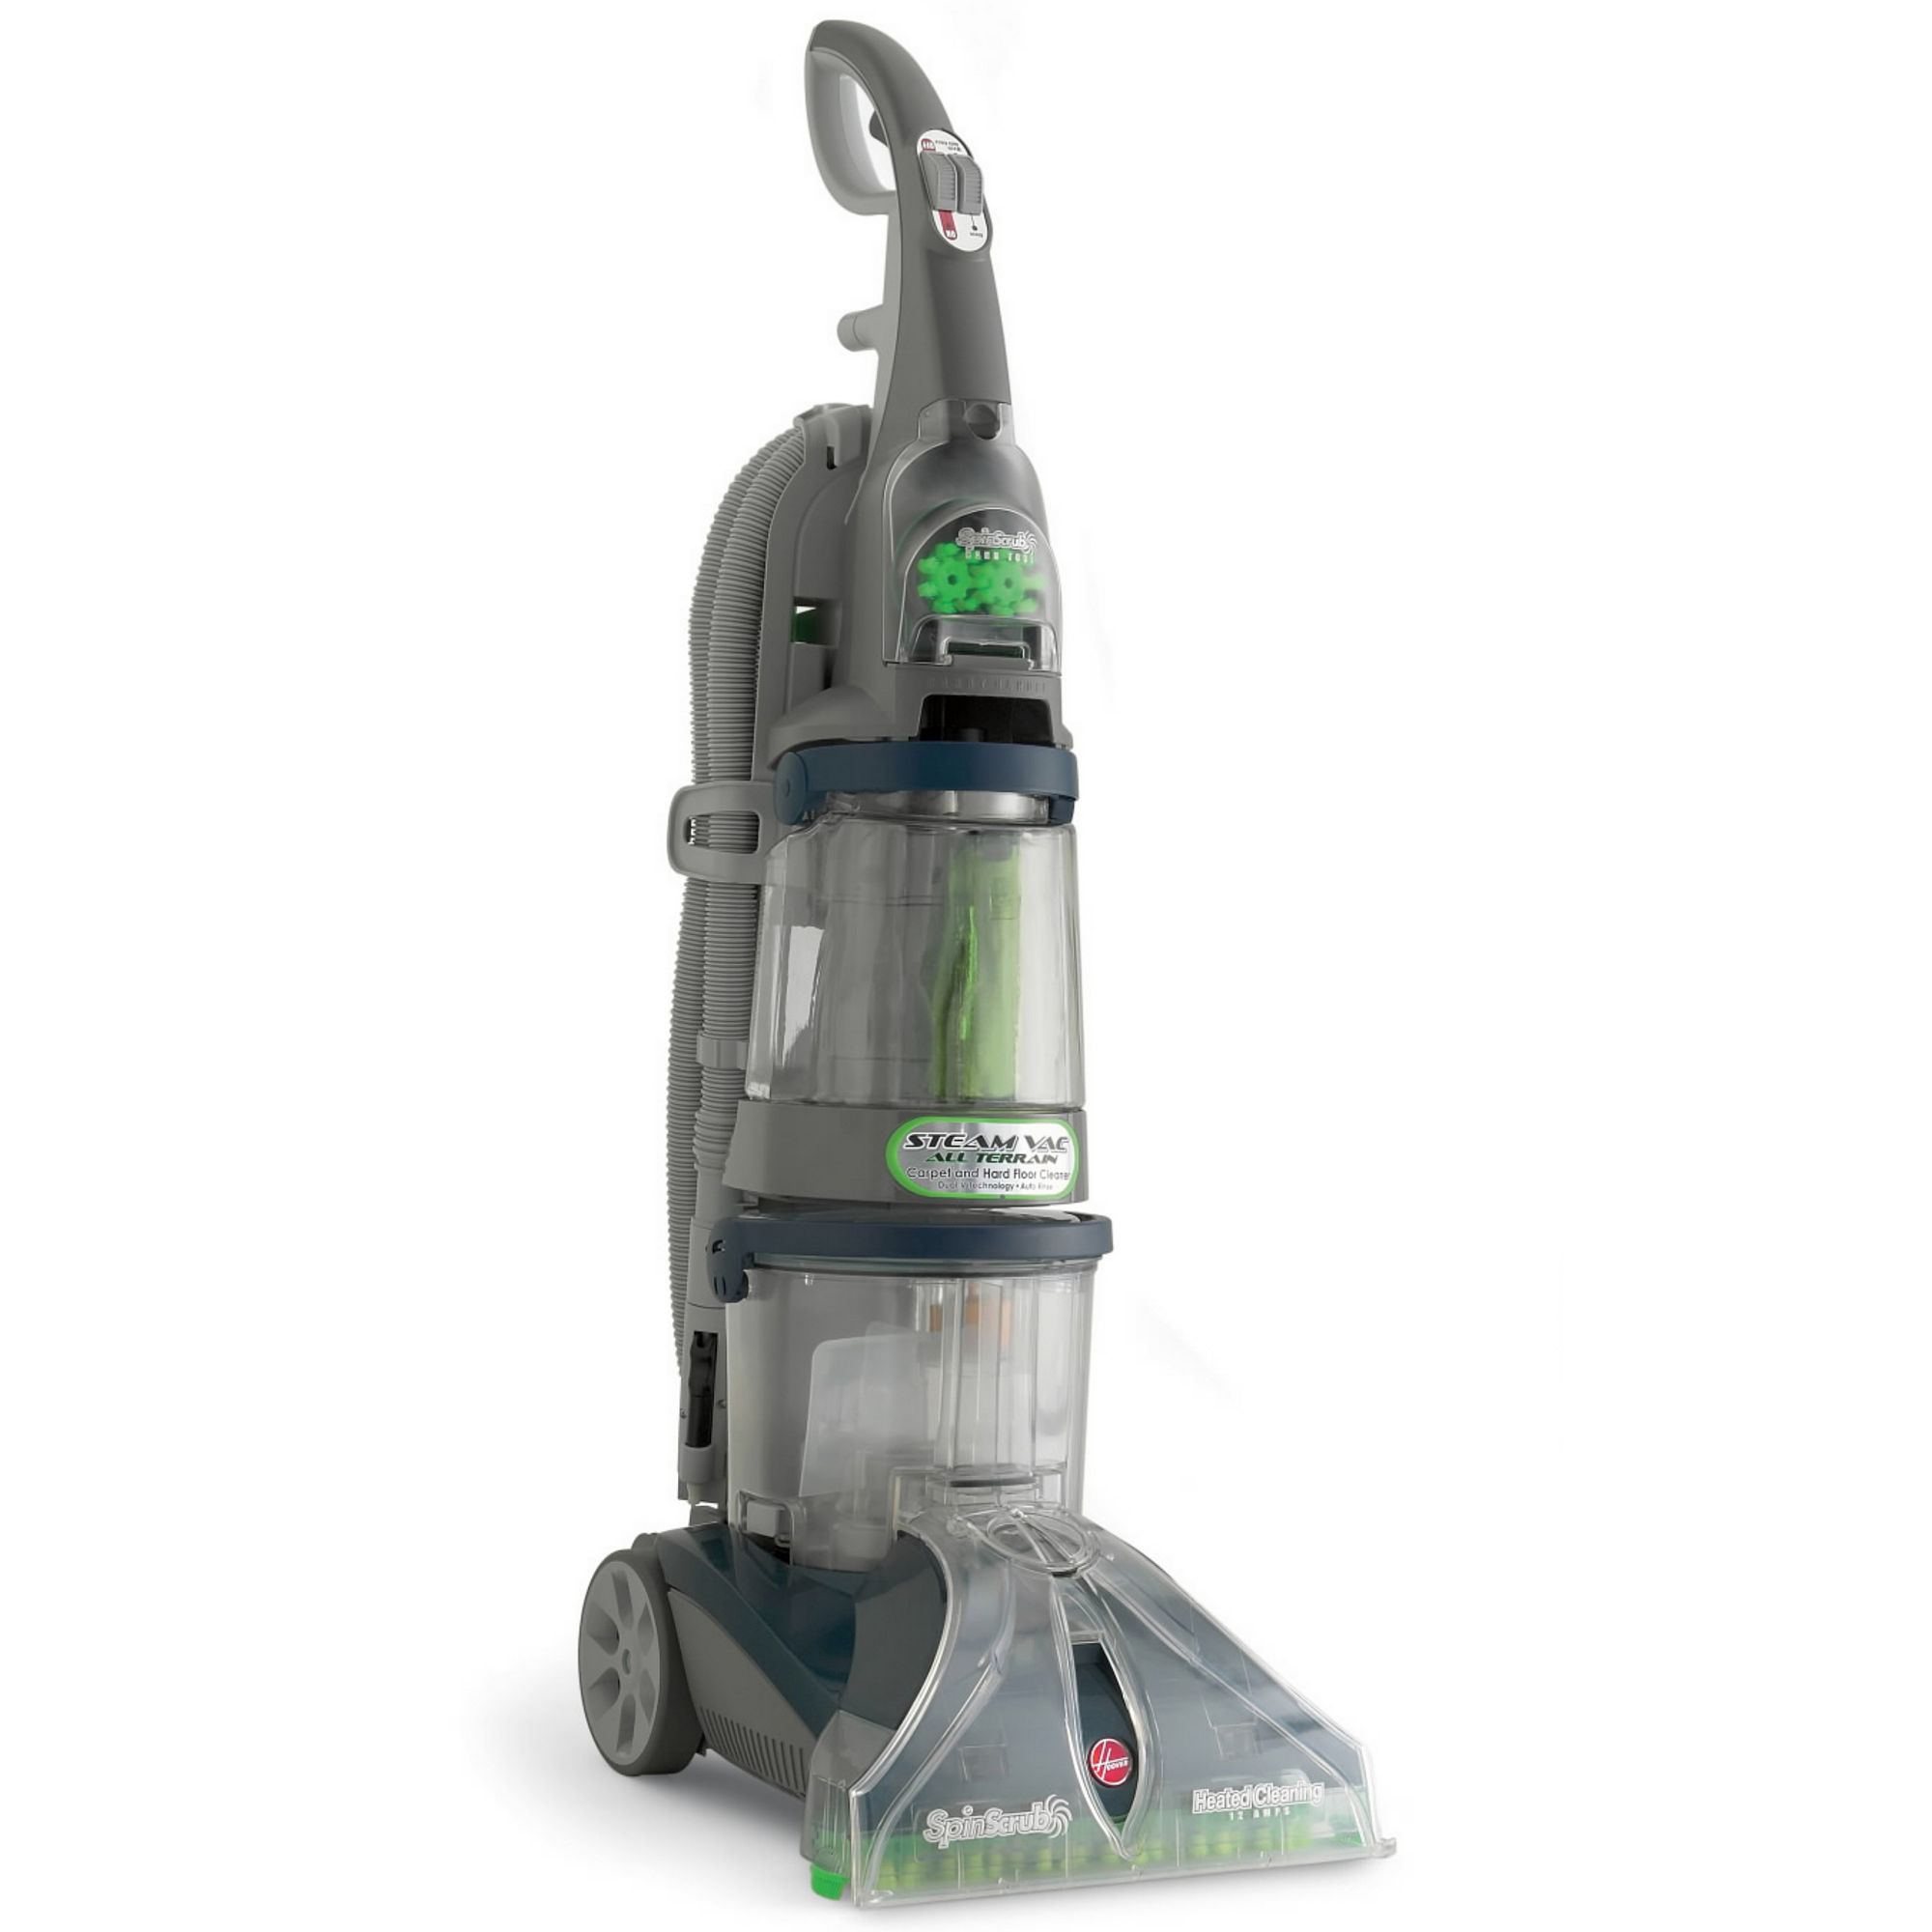 Hoover F7452900 Max Extract All-Terrain Carpet Cleaner